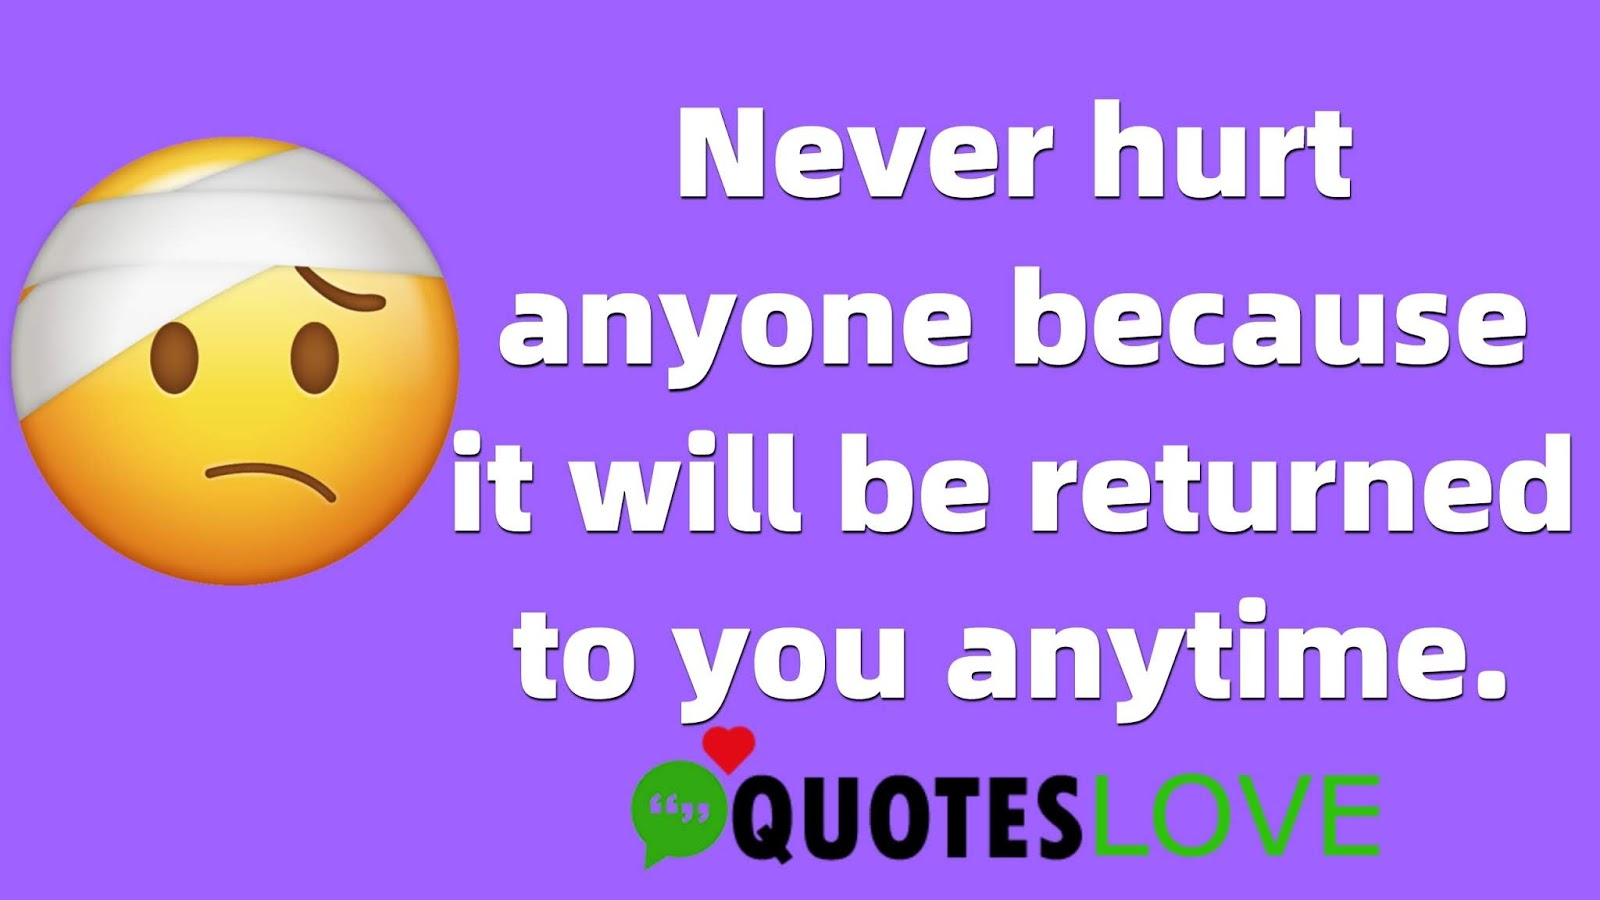 Never hurt anyone because it will be returned to you anytime.